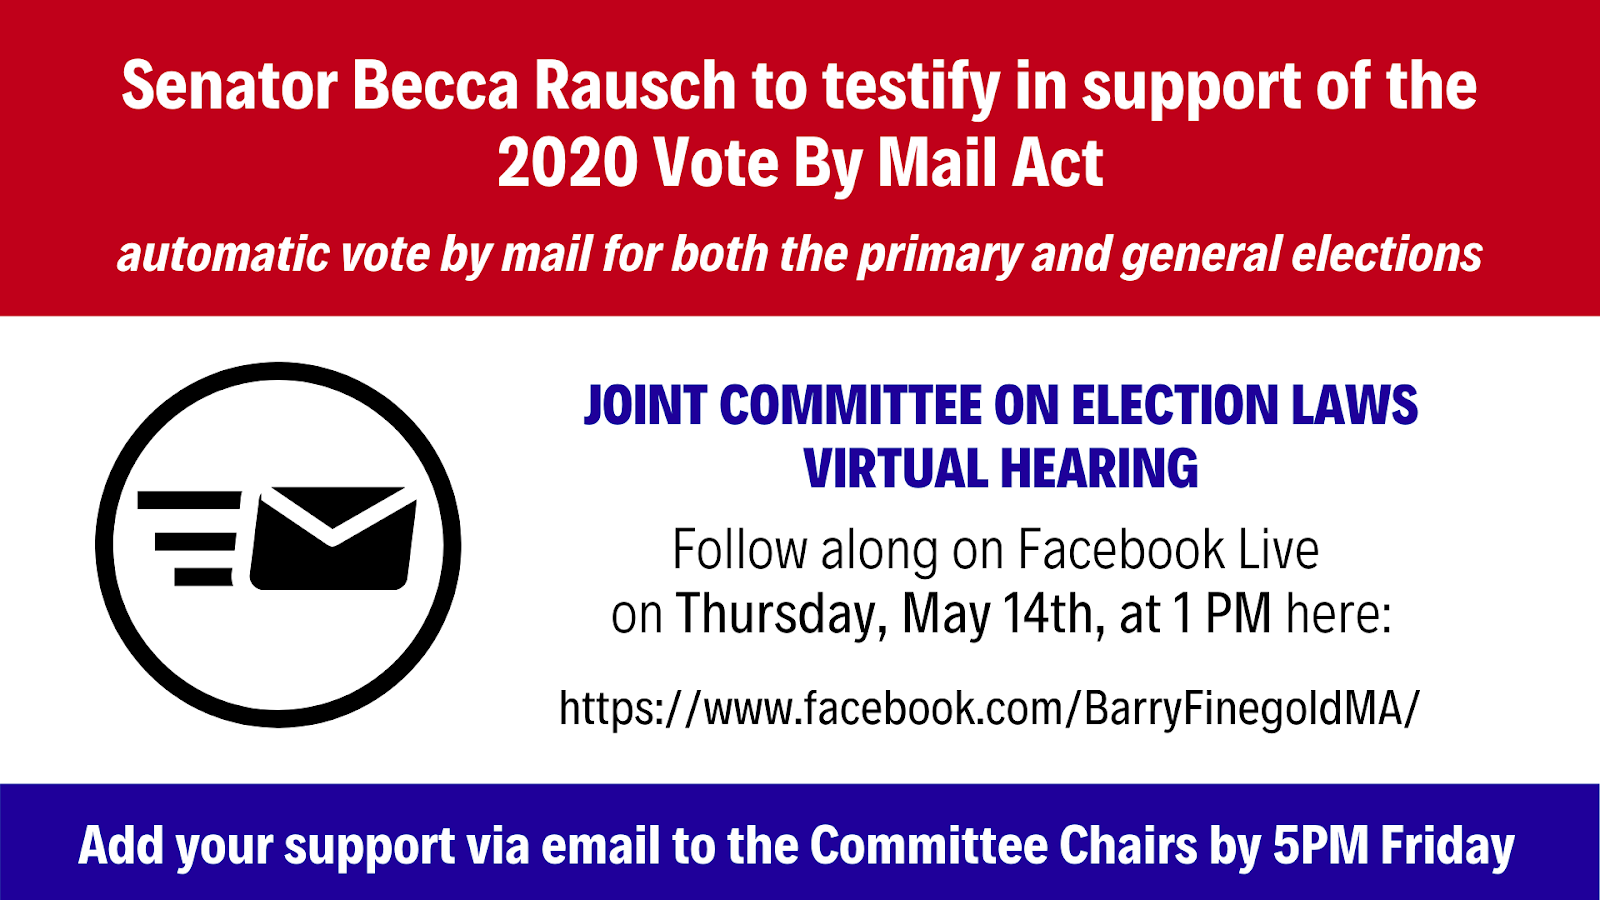 2020 vote by mail act